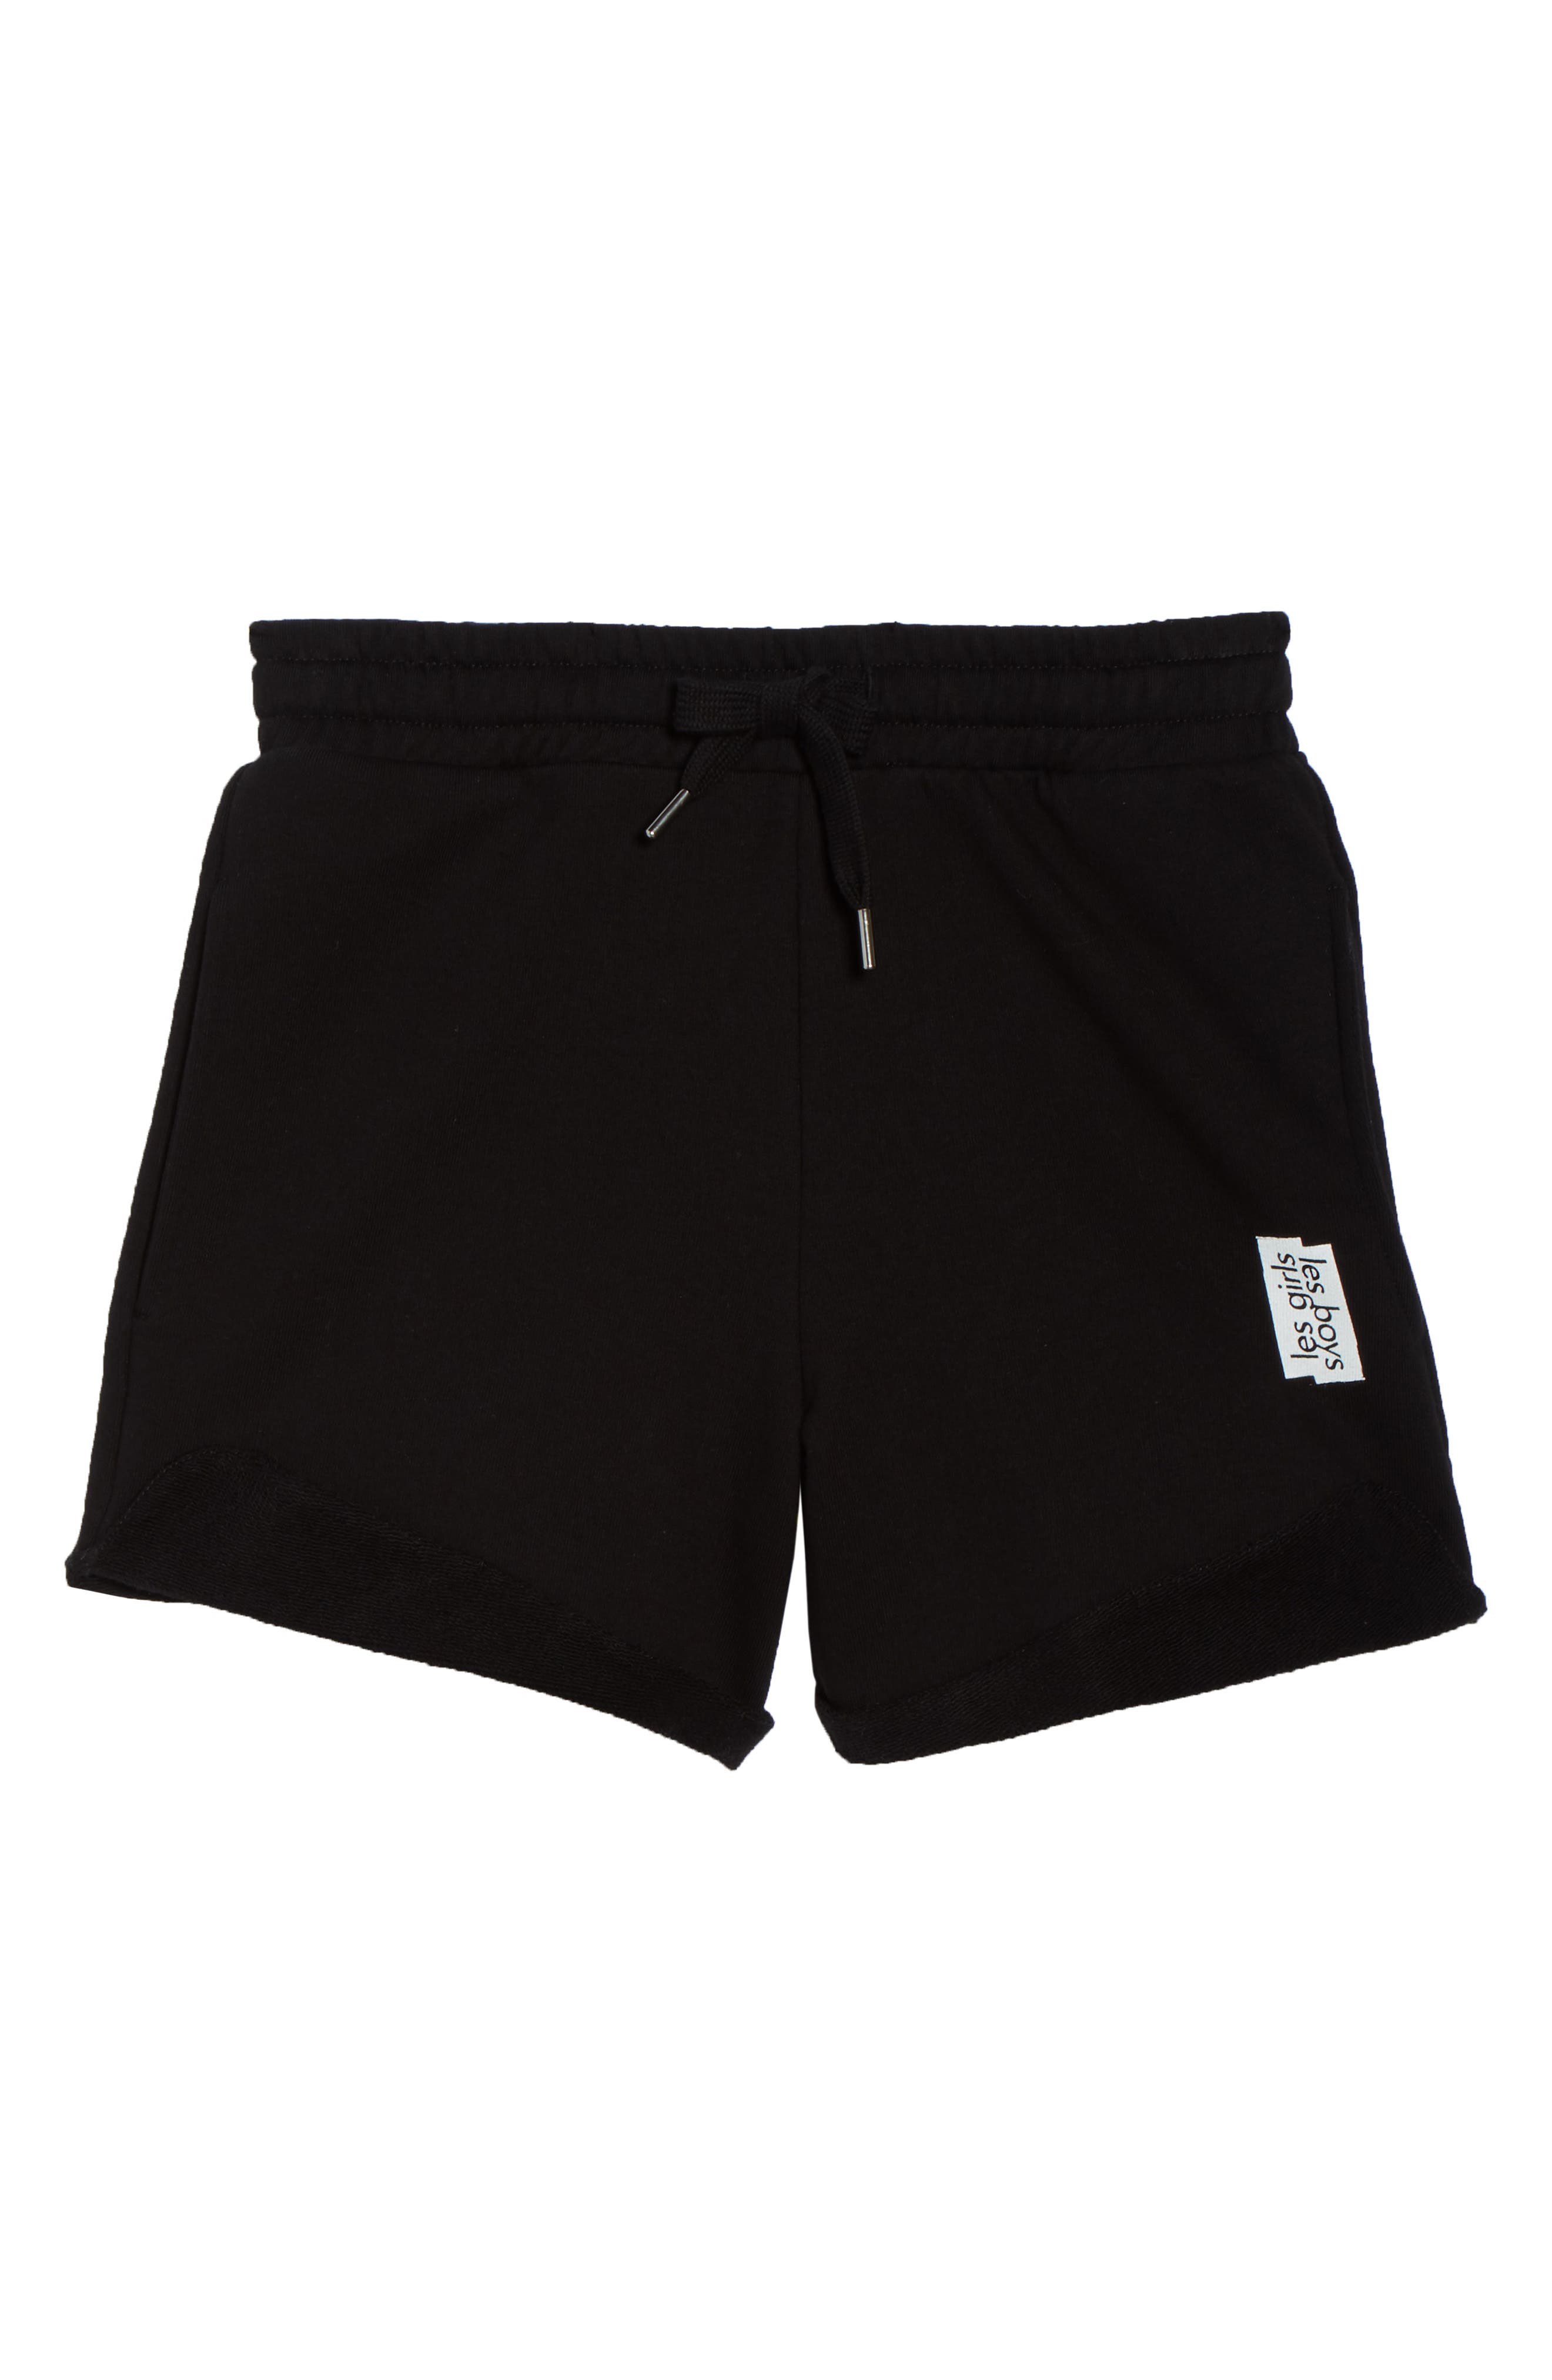 French Terry High Waist Shorts,                             Alternate thumbnail 4, color,                             Black